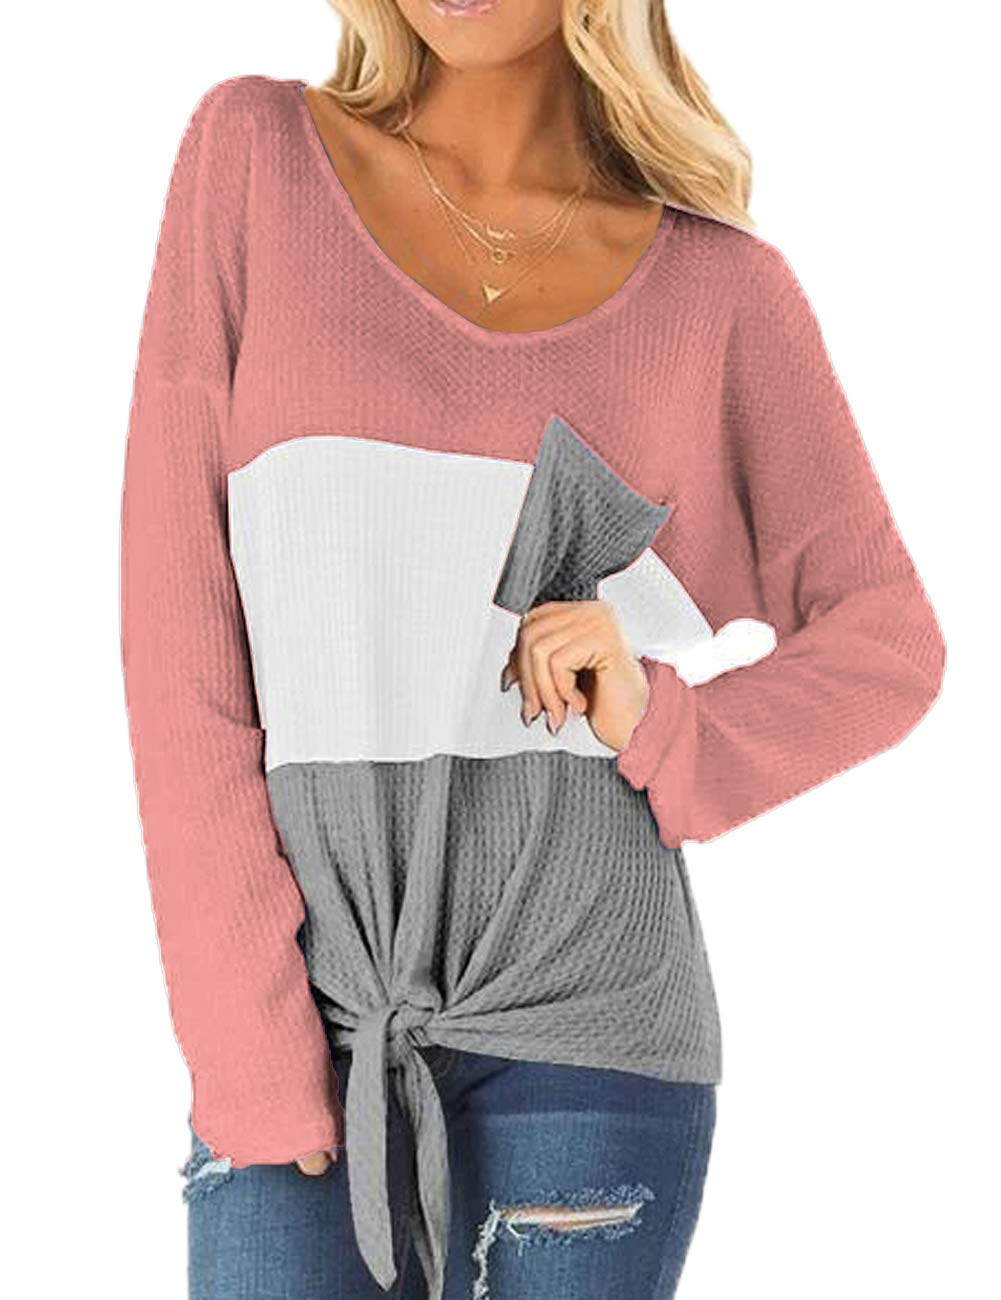 Ido4U Women\'s Long Sleeve Sweater Color Block Casual V Neck Waffle Knit Twist Blouses Tops (S,Pink)